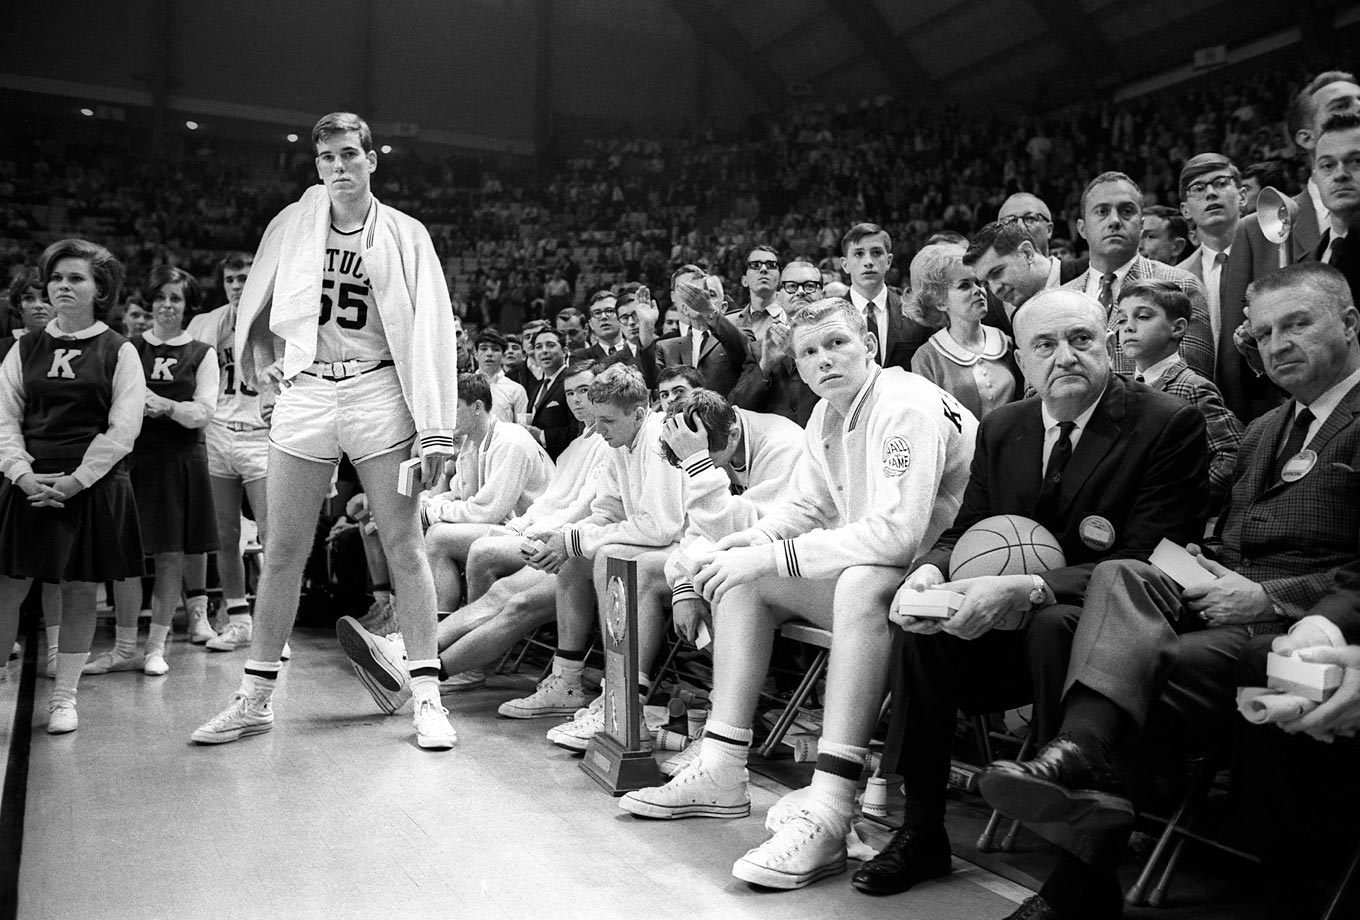 Kentucky coach Adolph Rupp (with basketball) and his players watch as Texas Western receives the championship trophy. Kentucky lost 72-65 after Texas Western's Bobby Joe Hill had successive steals to turn the game around.